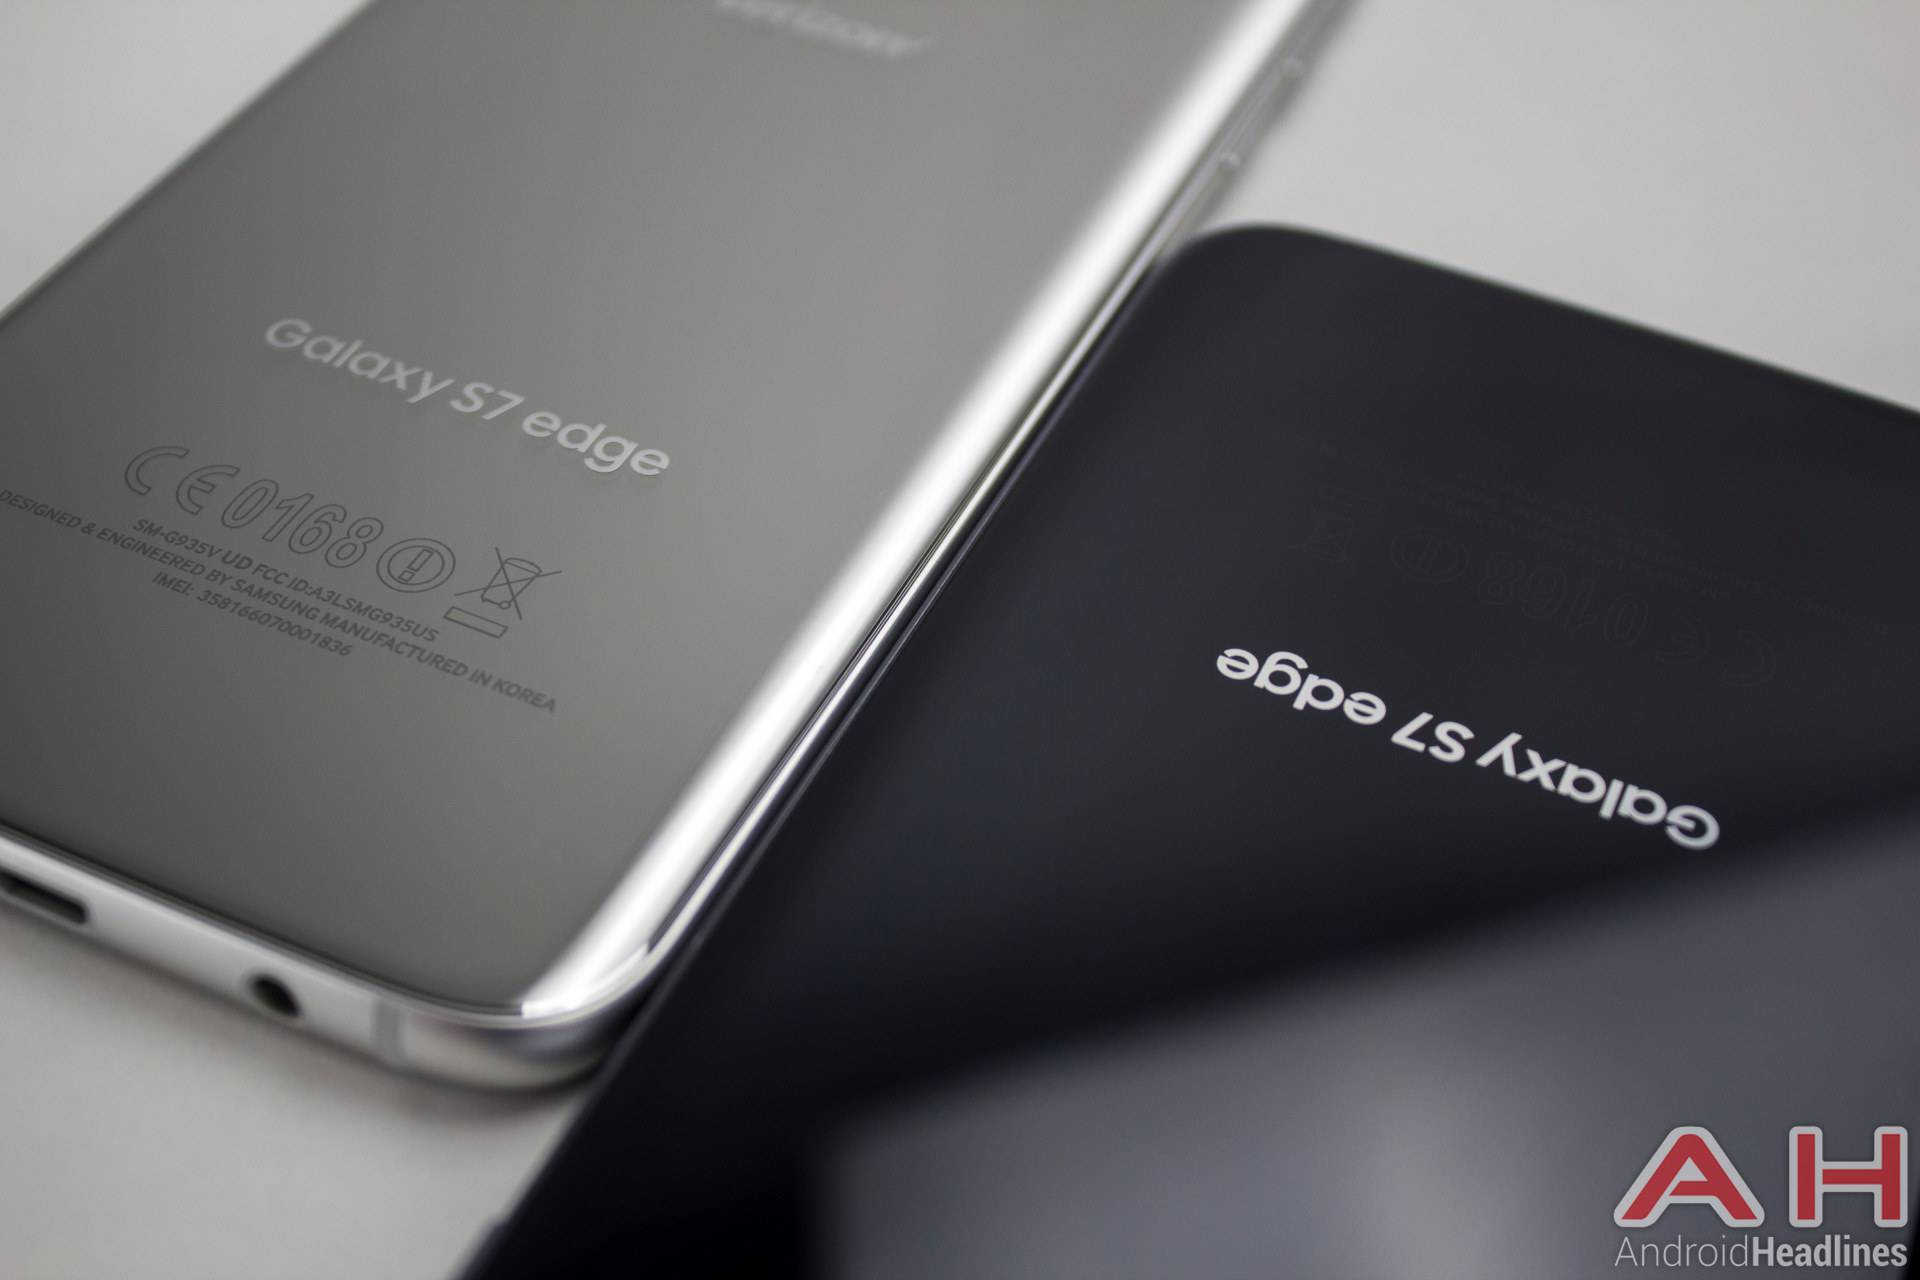 Samsung galaxy s7 edge olympic edition will unveil on july 7 mobile - Samsung Will Soon Be Adding A New Member To Their Galaxy S7 Edge Lineup The Galaxy S7 Edge Olympic Edition Which Up Until Recently Was Only A Rumor